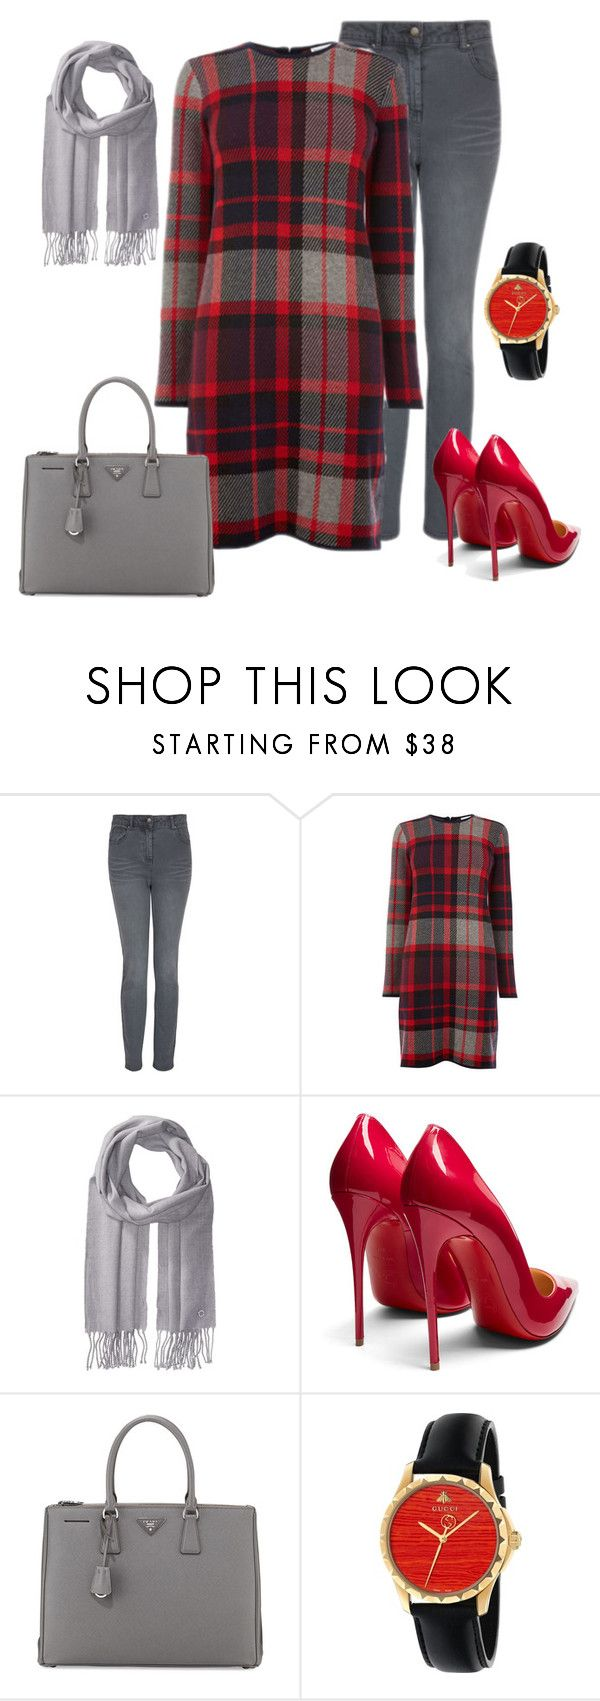 """""""Untitled #56"""" by asner-bond ❤ liked on Polyvore featuring Laura Ashley, Warehouse, Calvin Klein, Christian Louboutin, Prada and Gucci"""